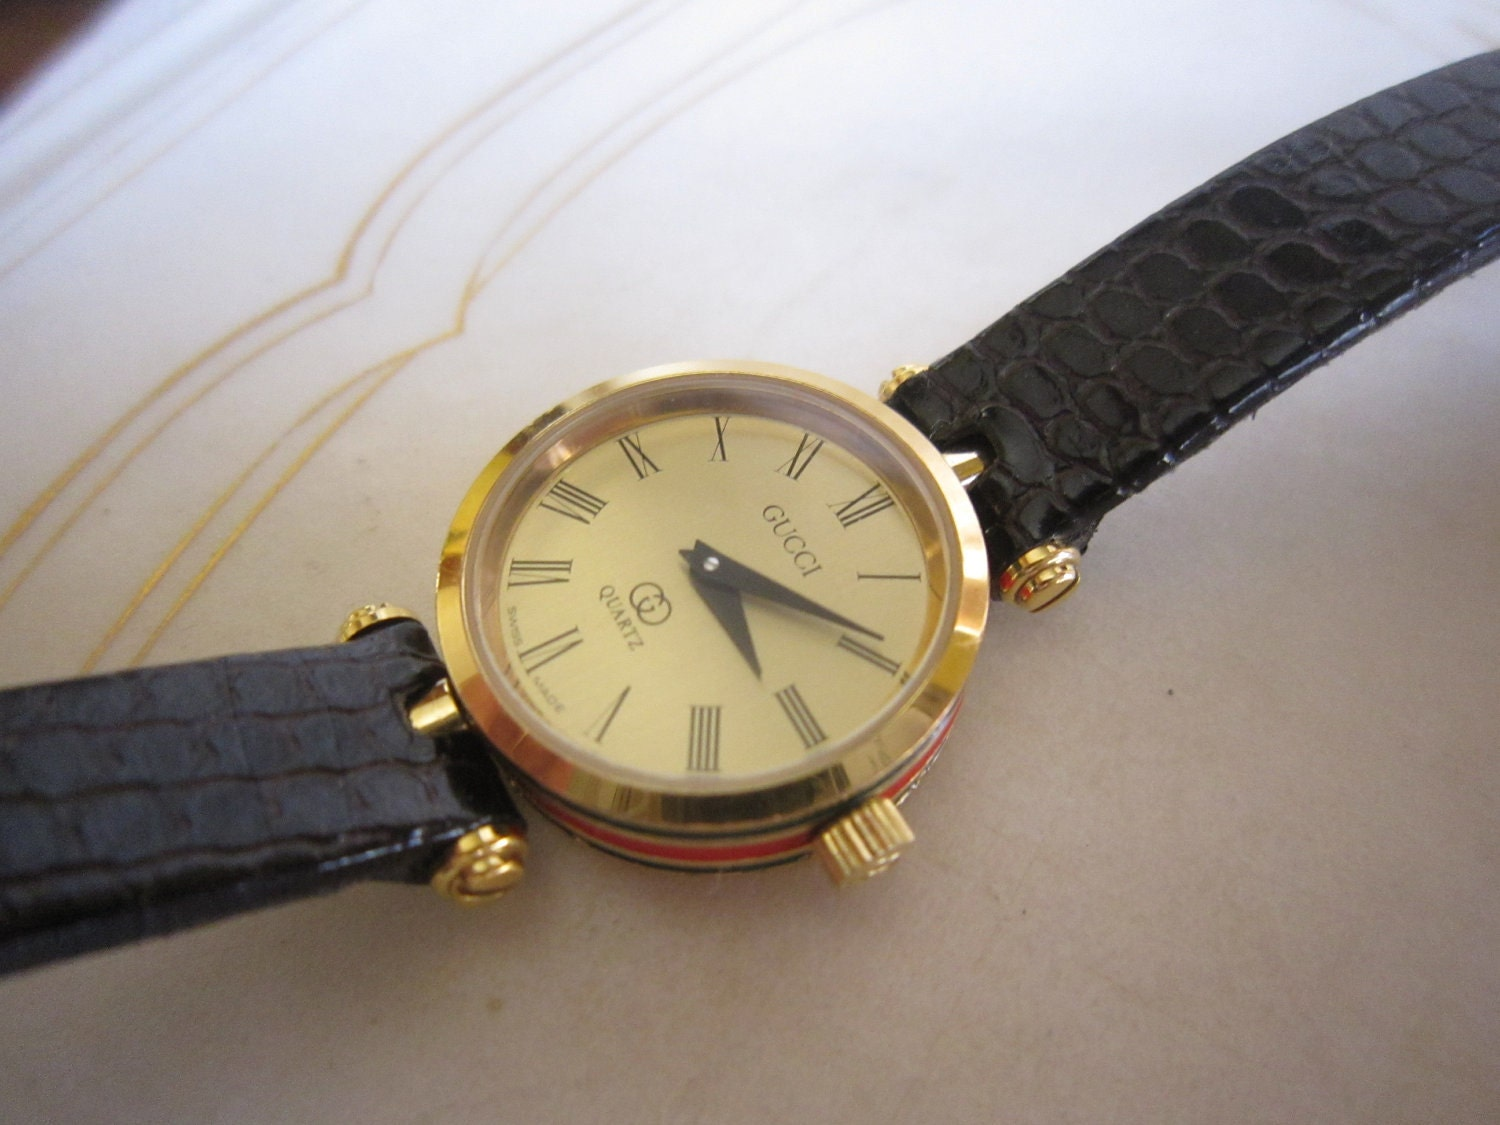 Sale Authentic Vintage Gucci Watch Was on Add Numbers And Color Picture